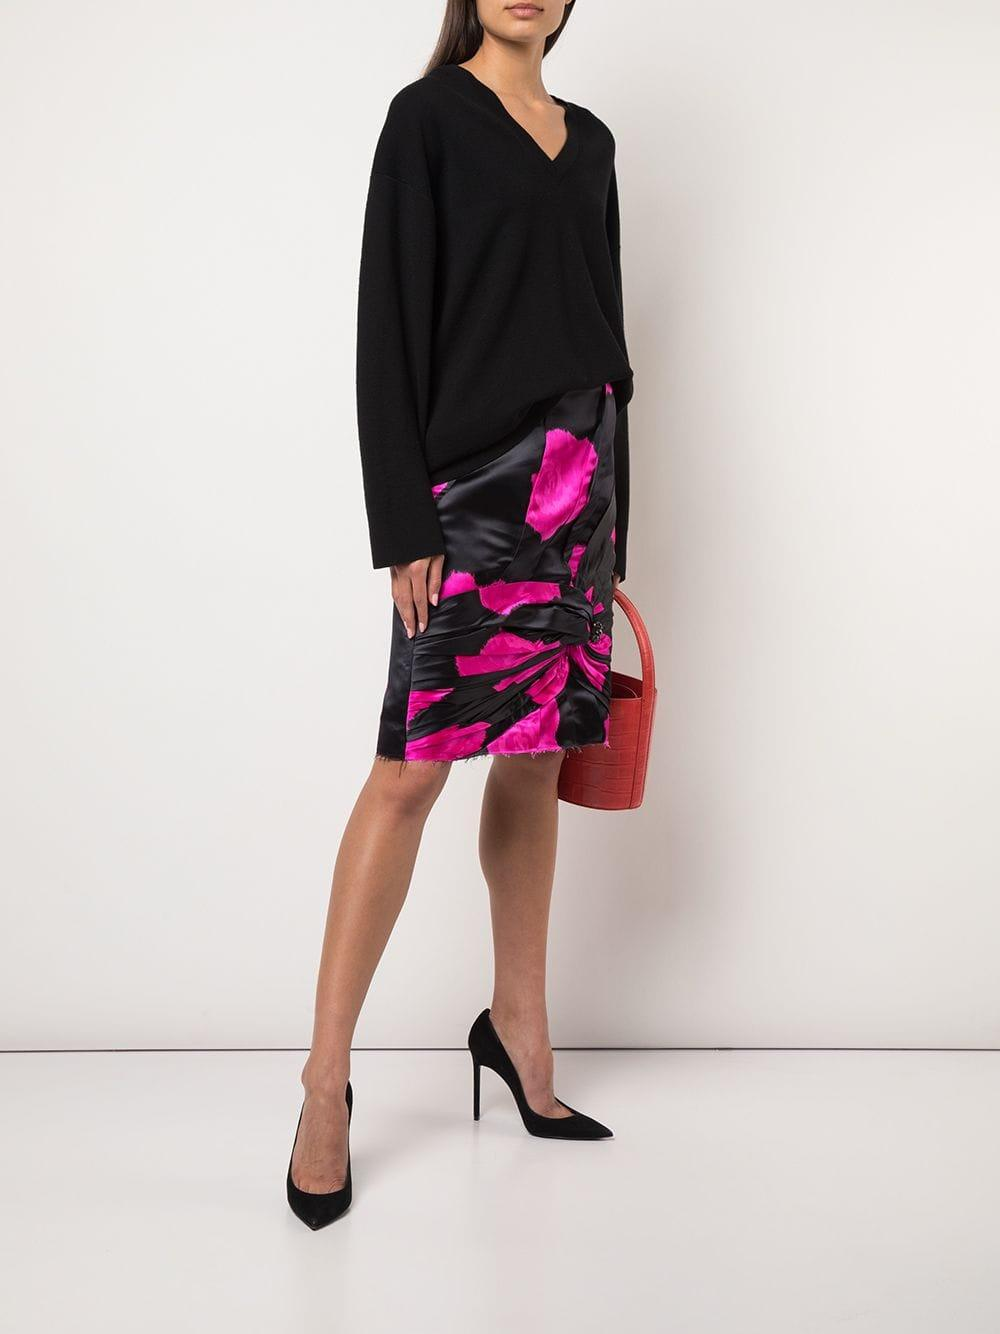 d2932e76c7 Lyst - CALVIN KLEIN 205W39NYC Knot Detail A-line Skirt in Black